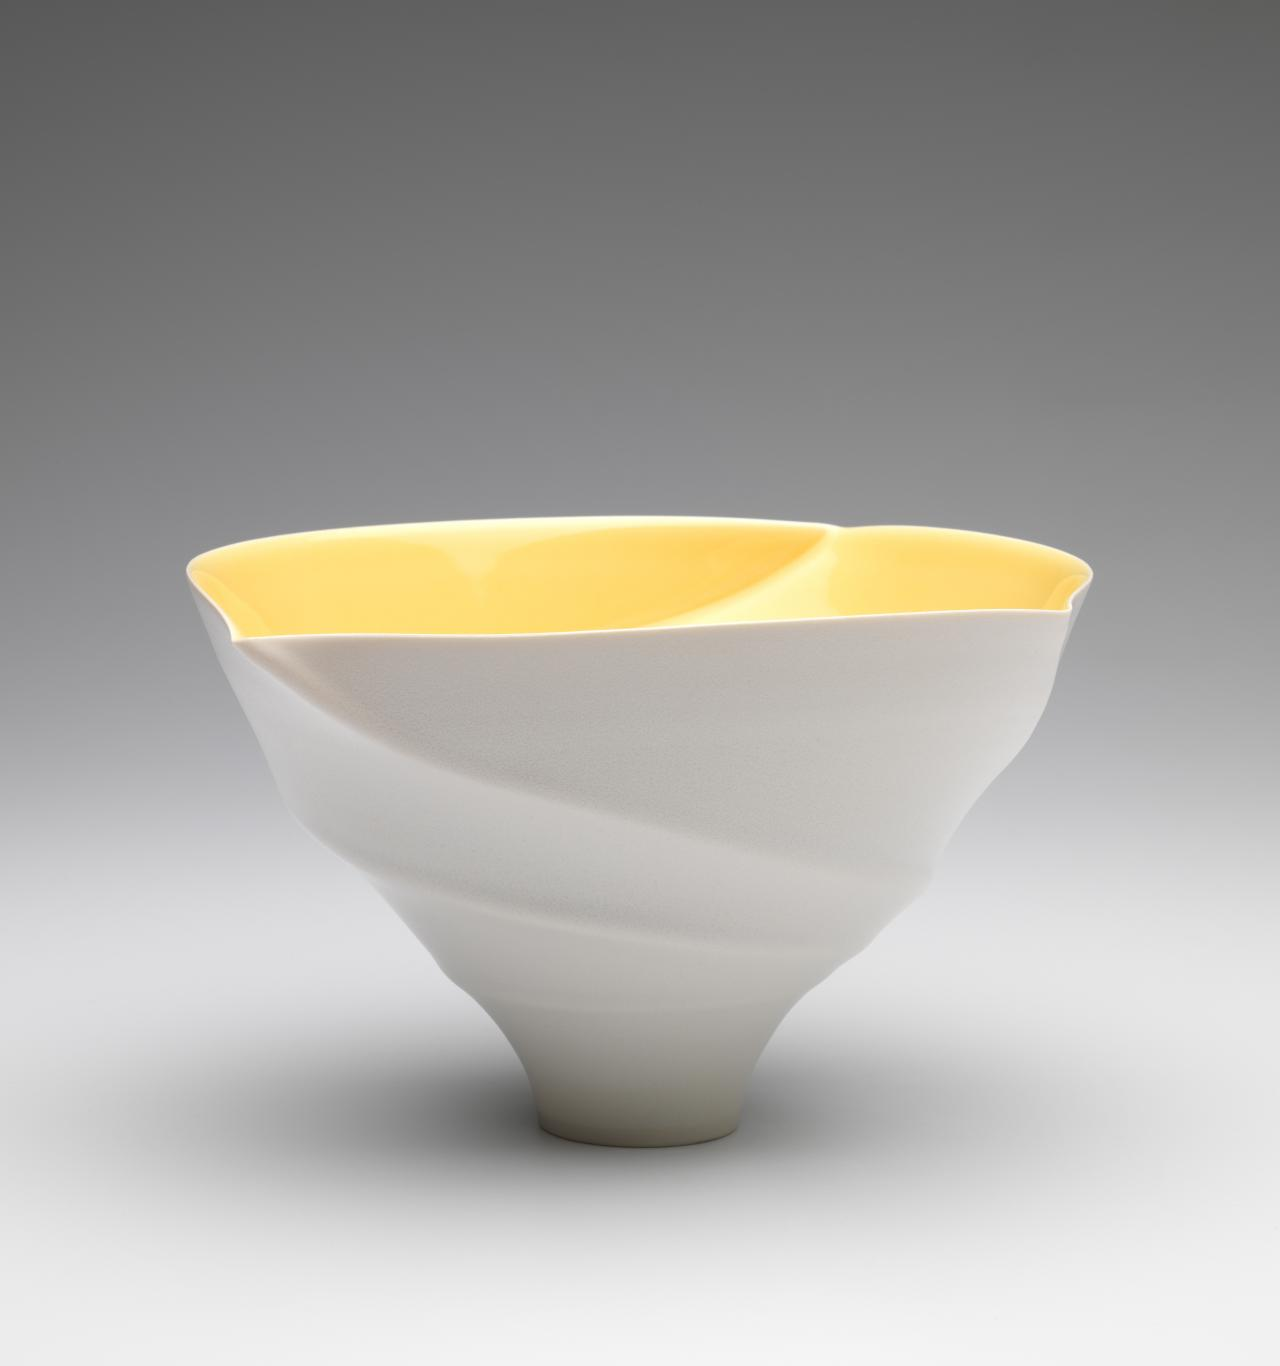 Spiral lipped bowl with yellow interior glaze